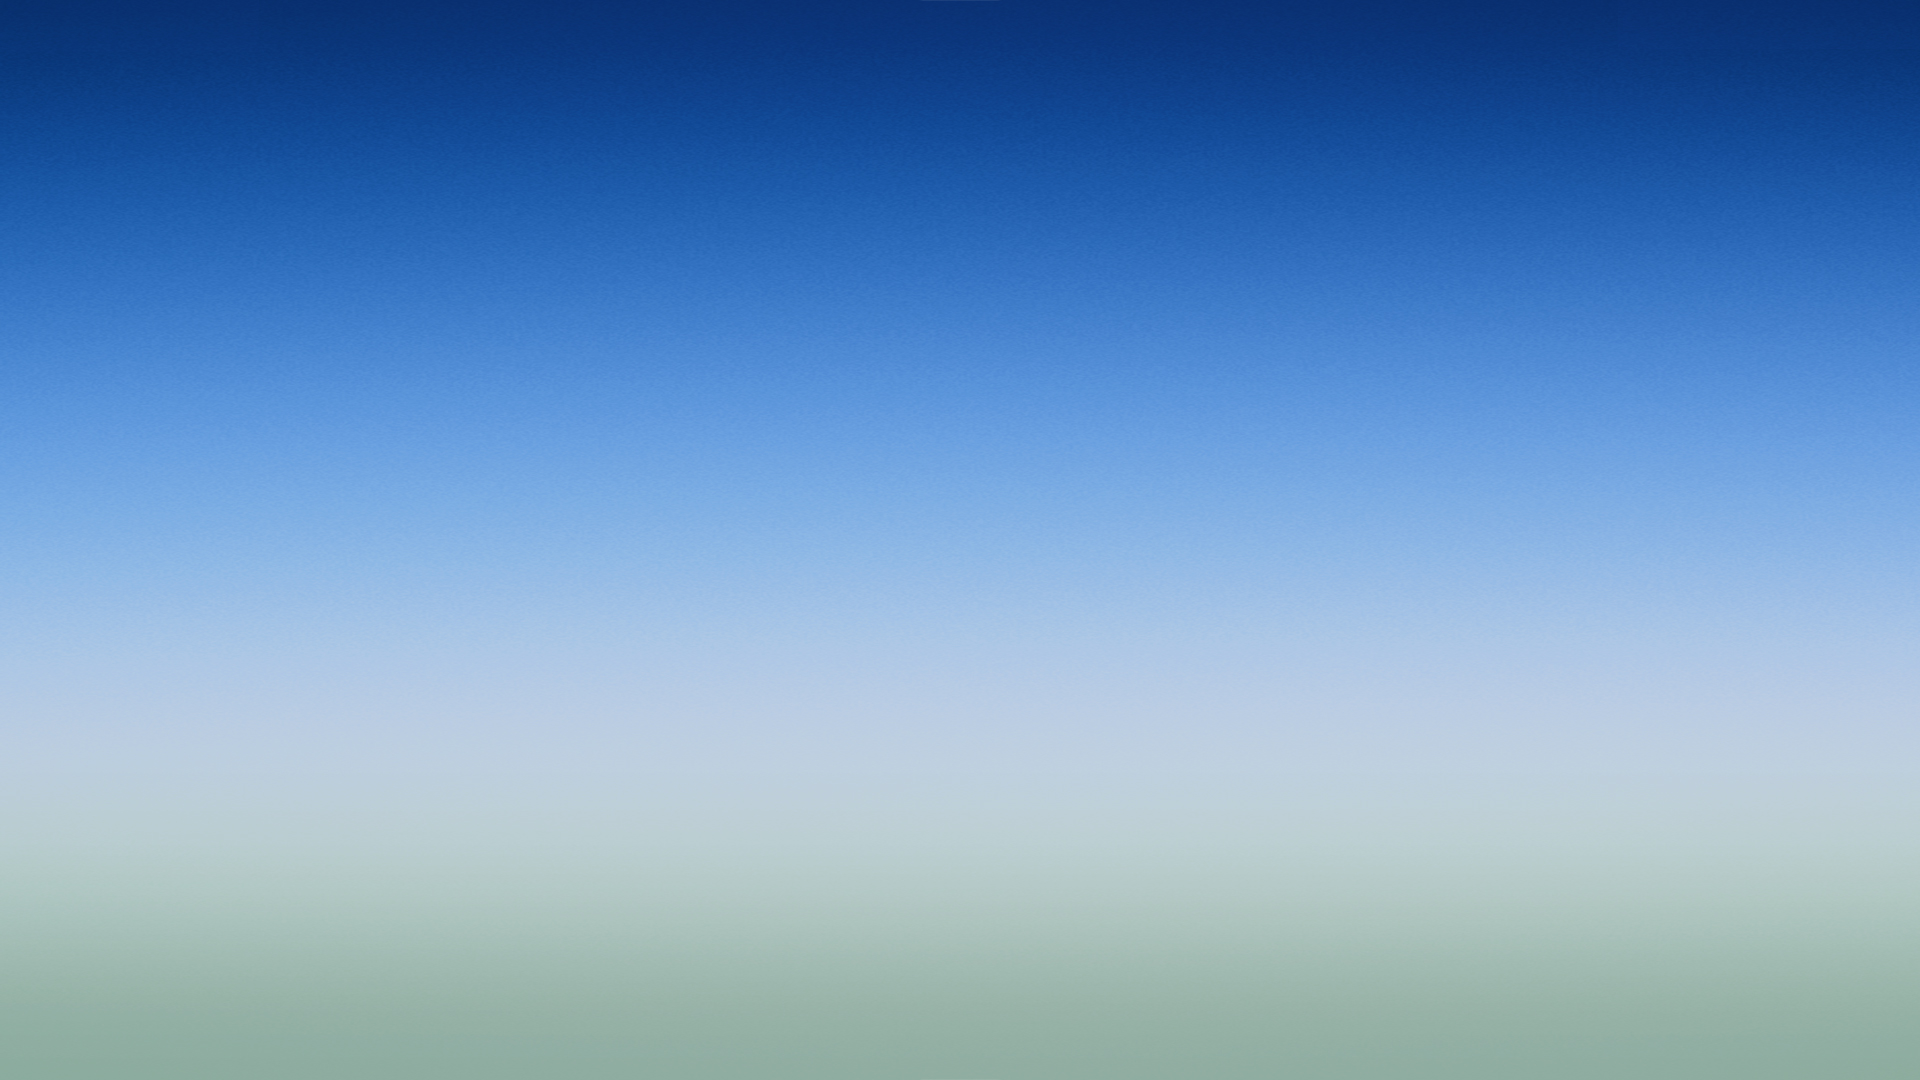 IPad Air 2 Wallpaper   Light Sun 1920x1080